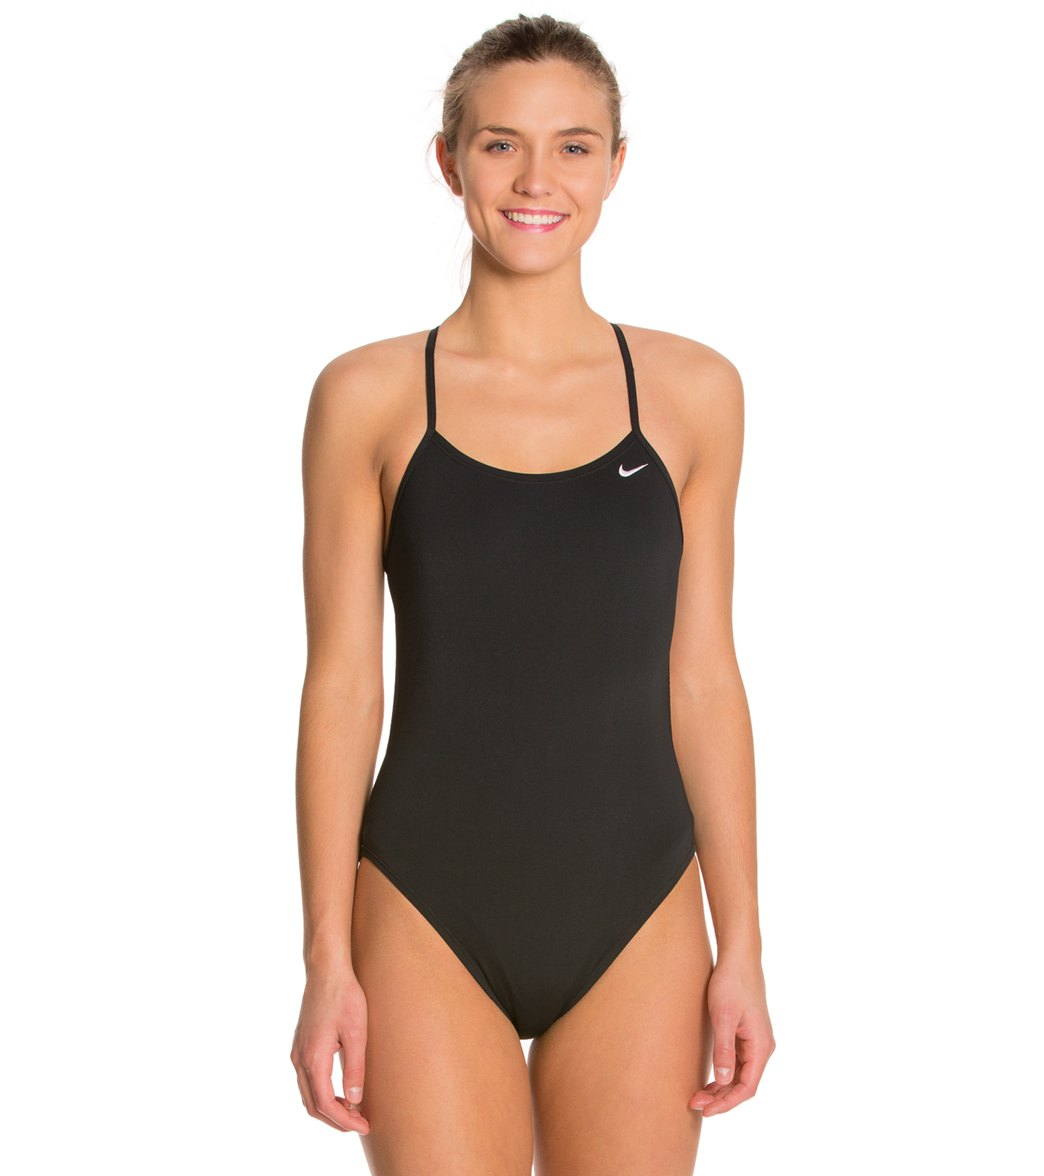 Nike Womens Swimsuit - Nike Big Swoosh Cut-Out Z64p6117